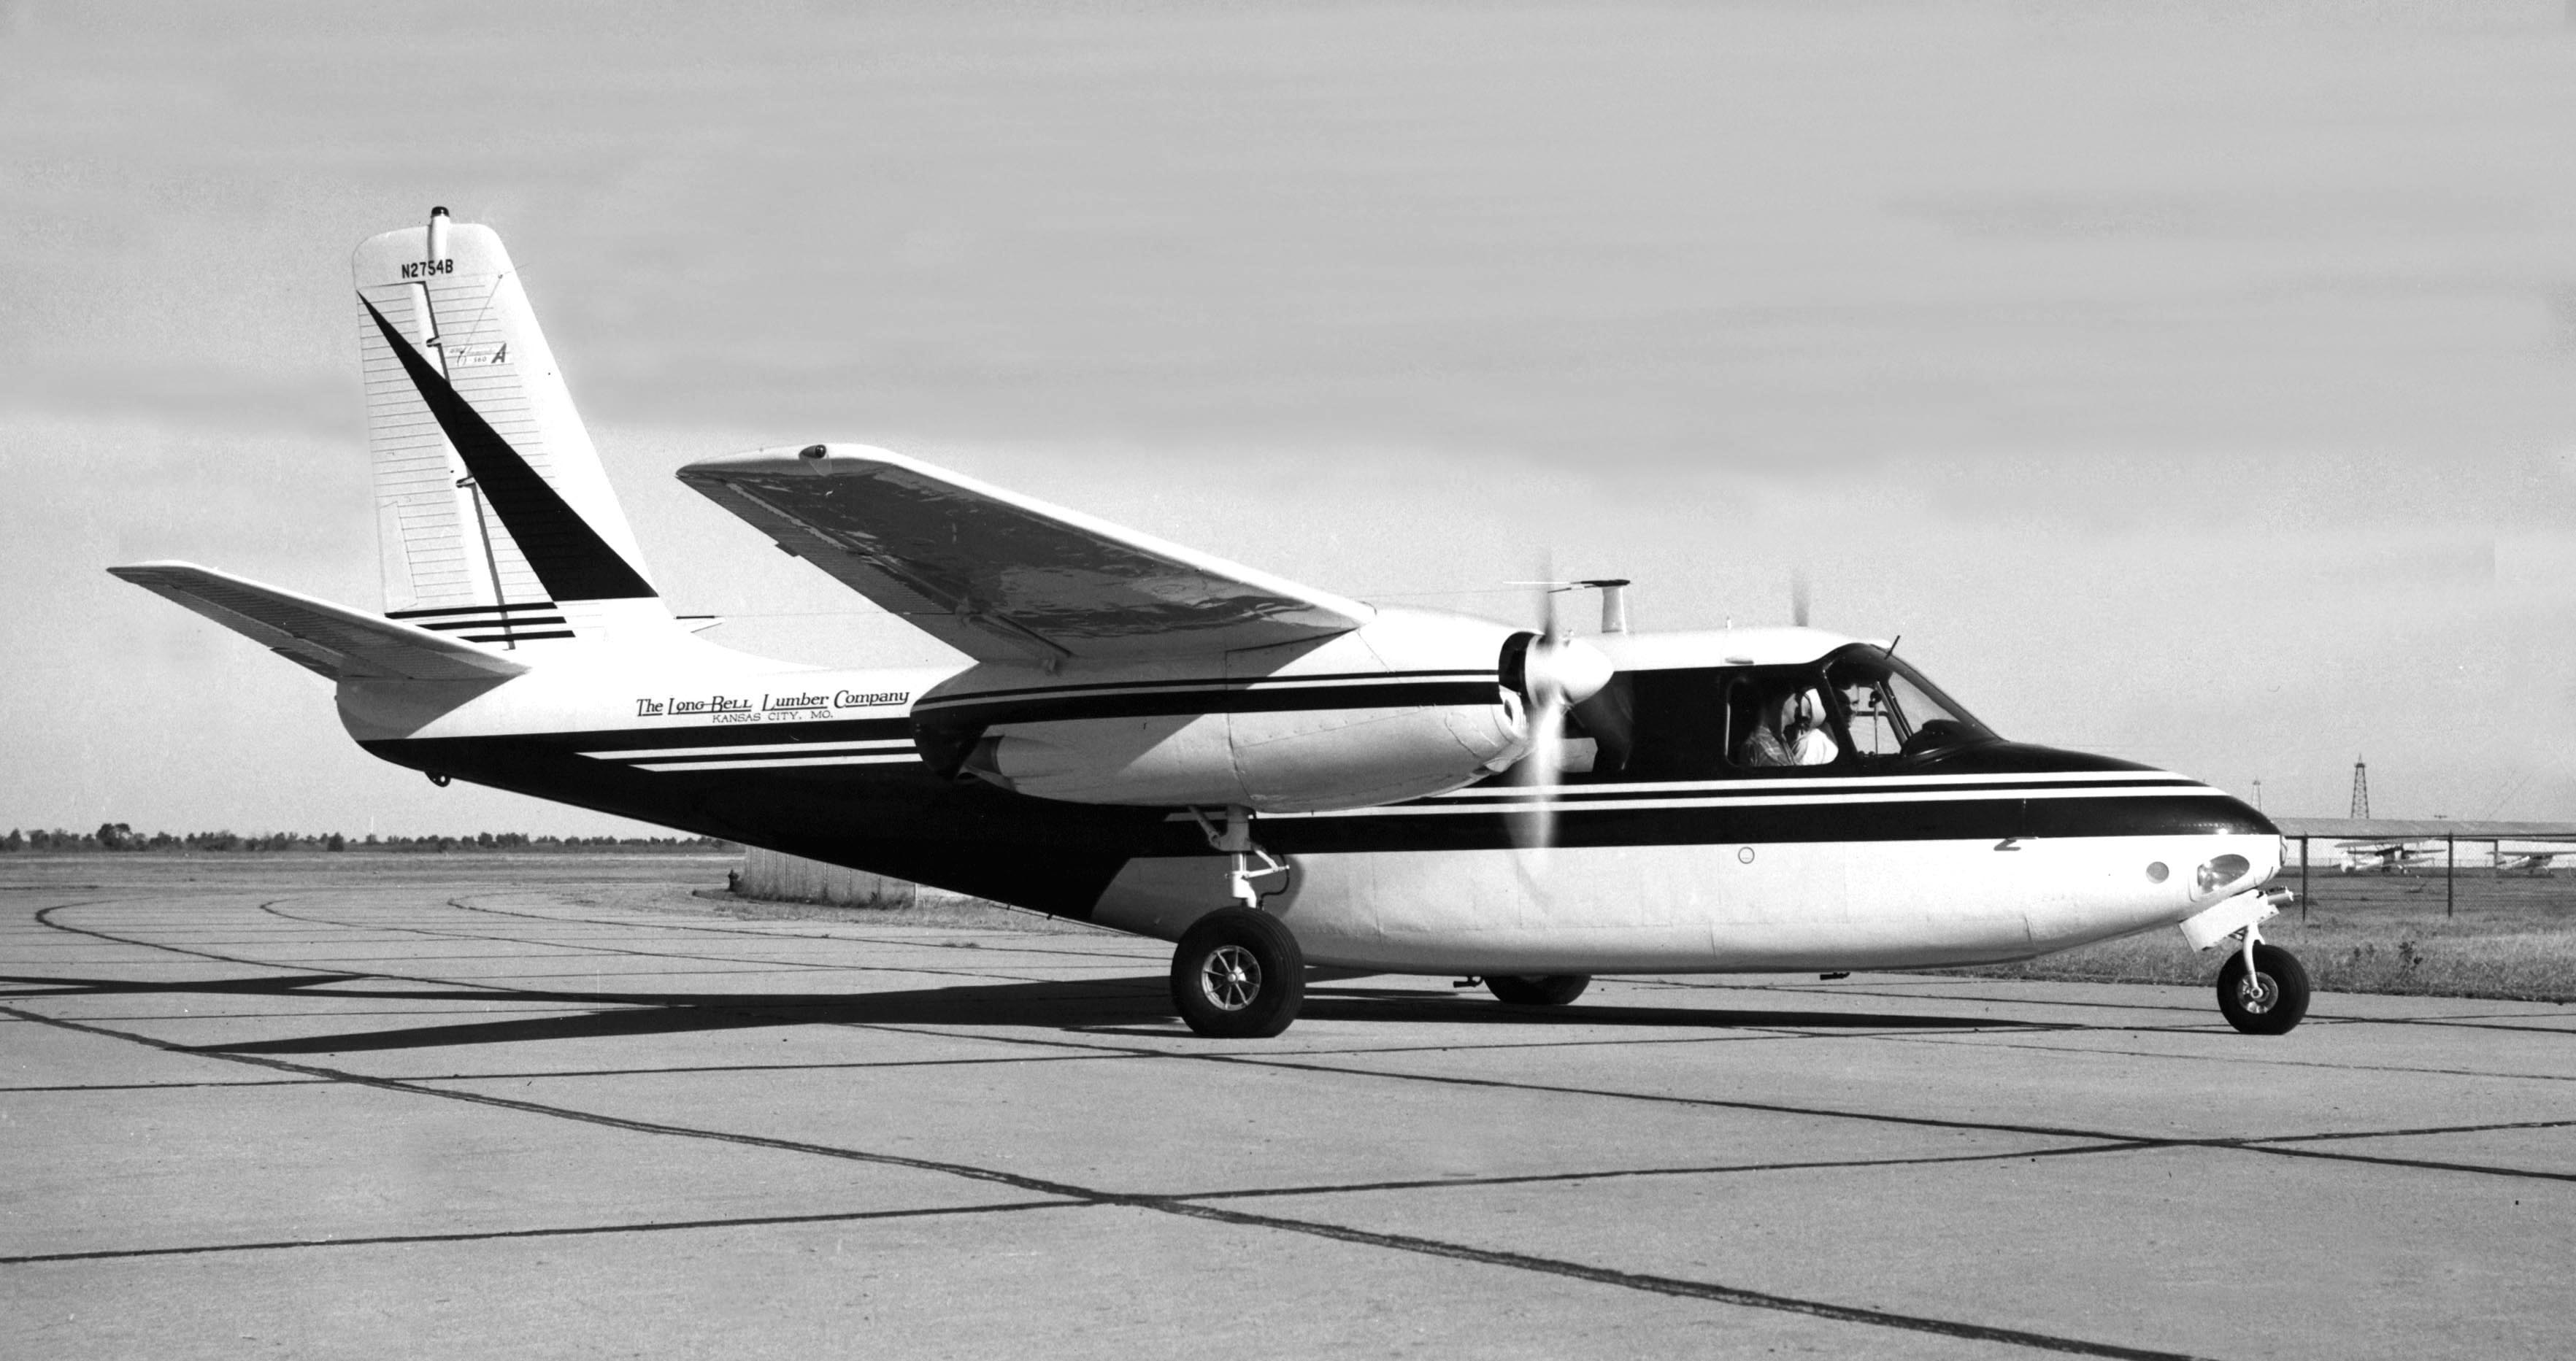 The 560A certified on July 1, 1955 featured a stretched fuselage.